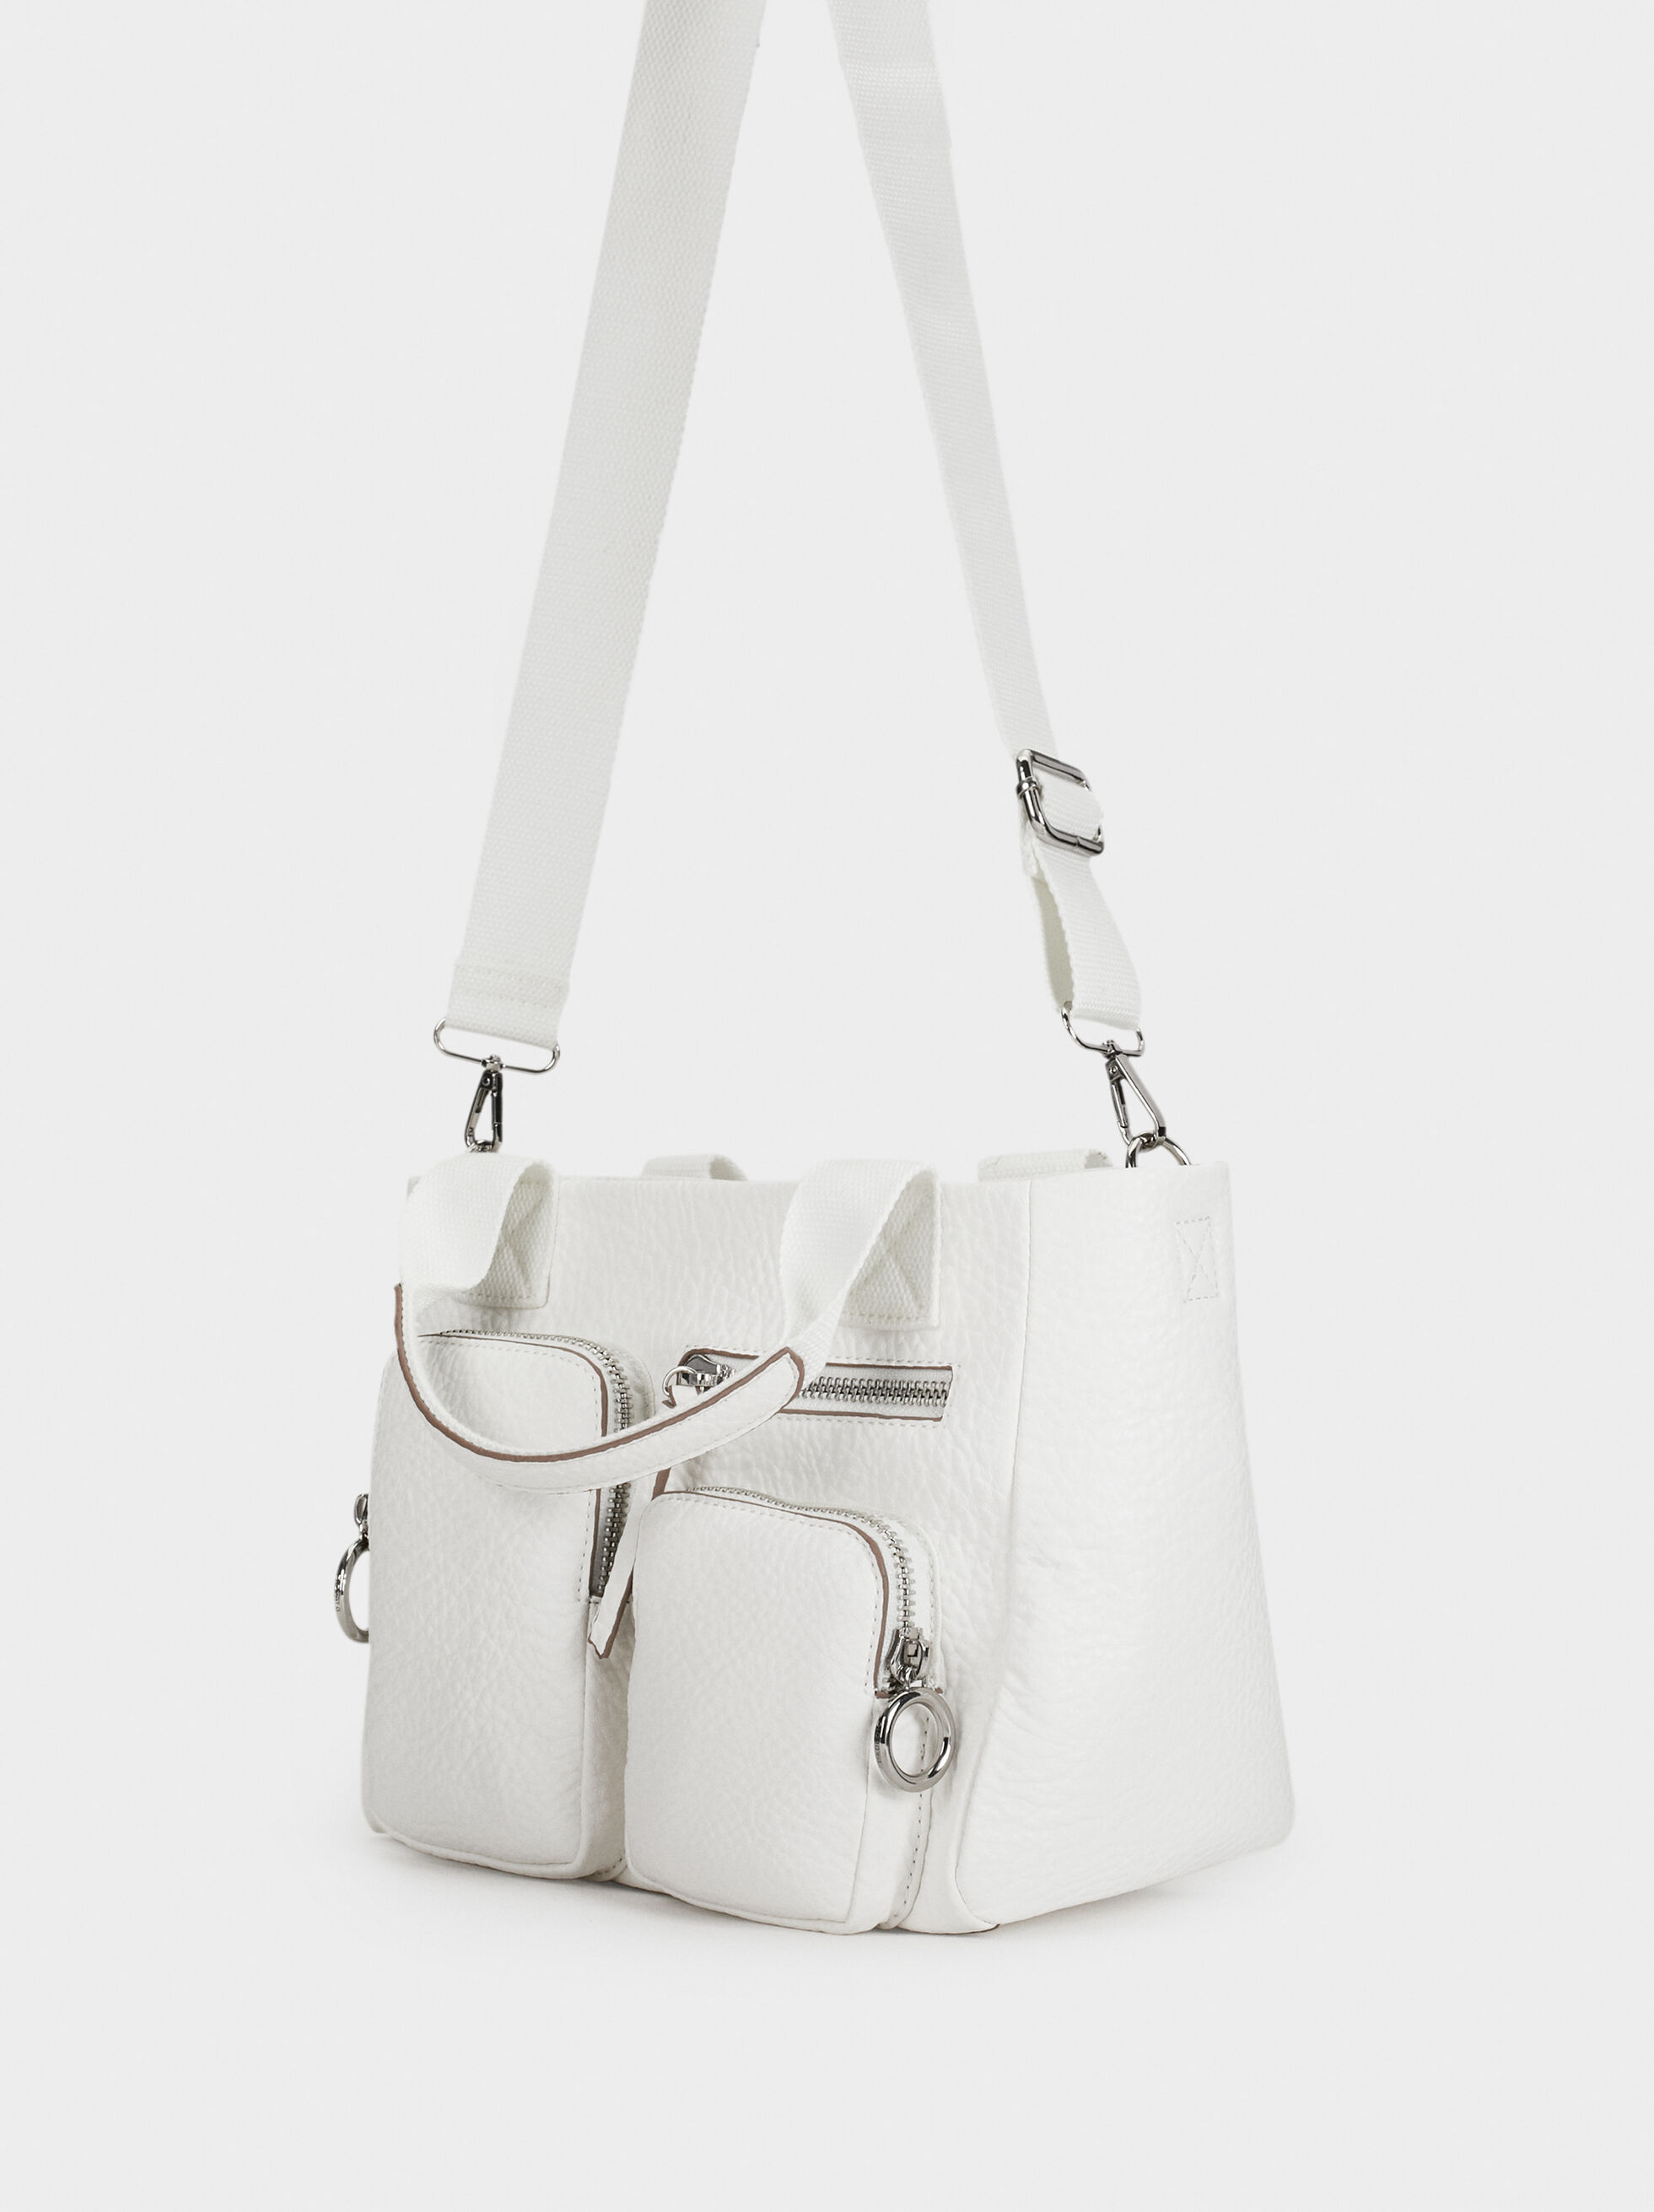 Tote Bag With Pockets, White, hi-res